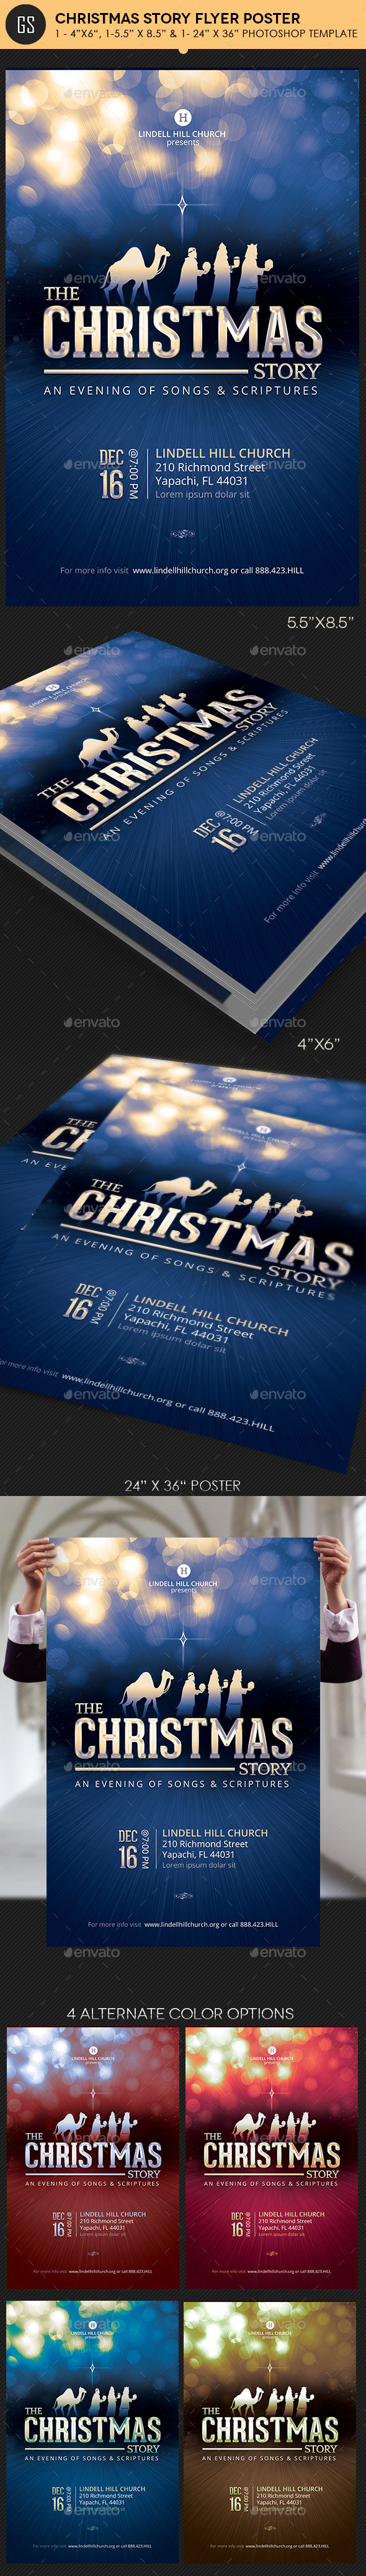 Christmas Story Church Flyer Poster Template - Church Flyers